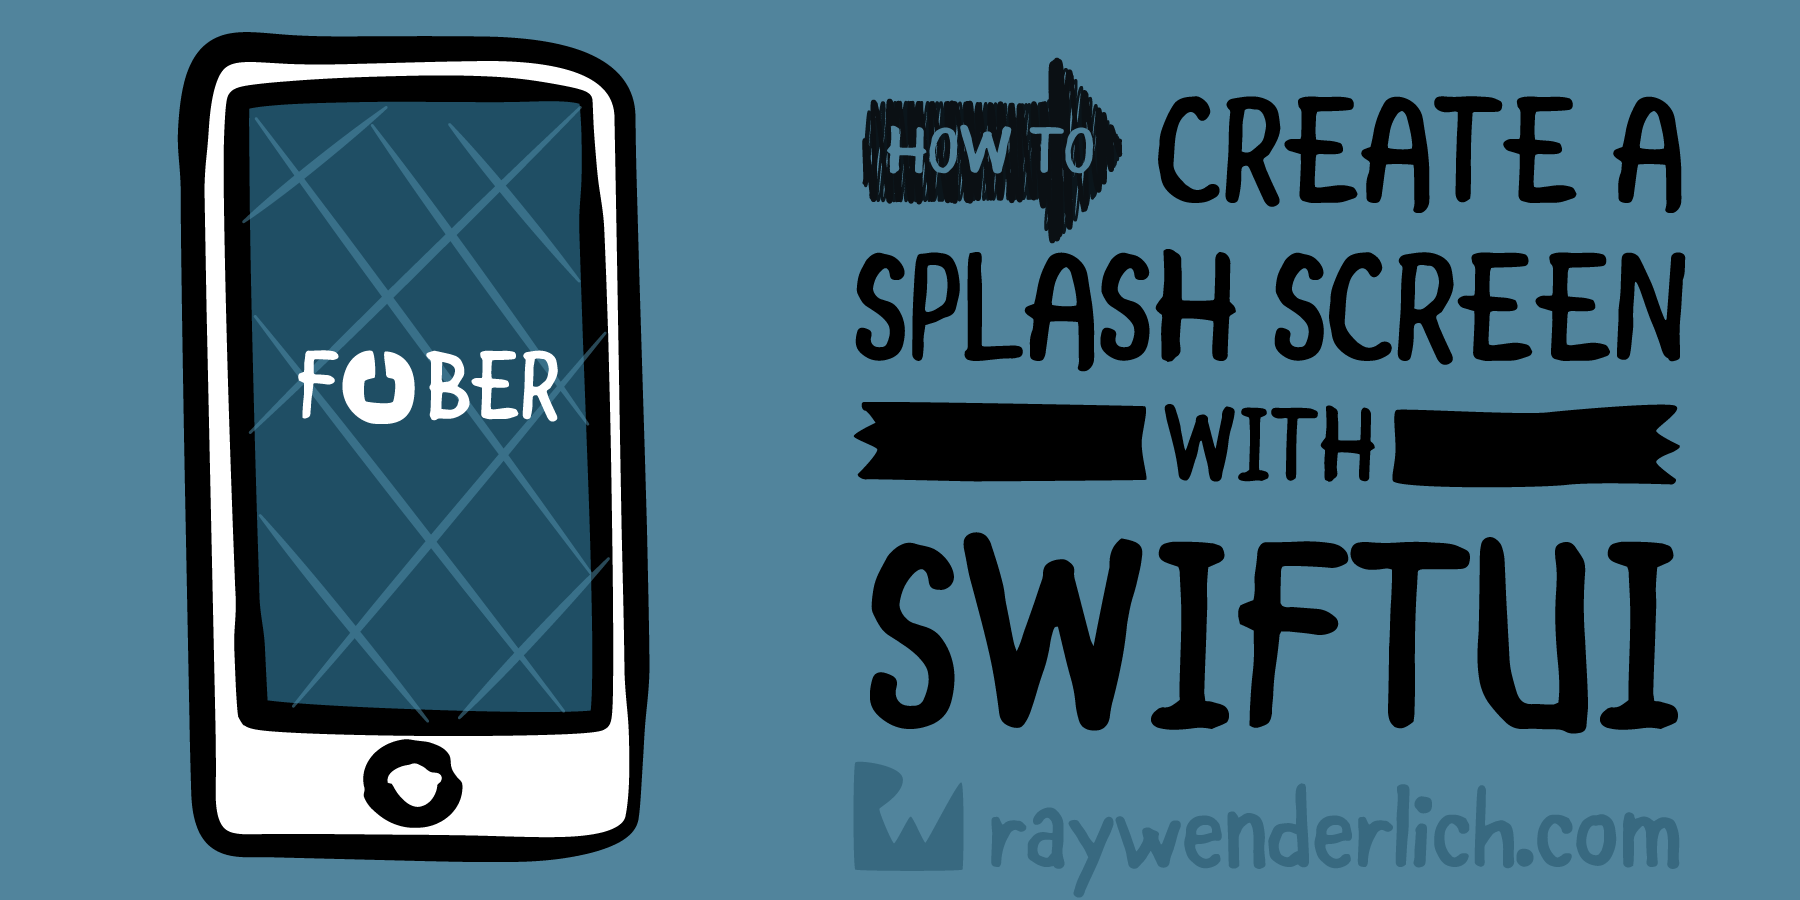 How to Create a Splash Screen With SwiftUI [FREE]